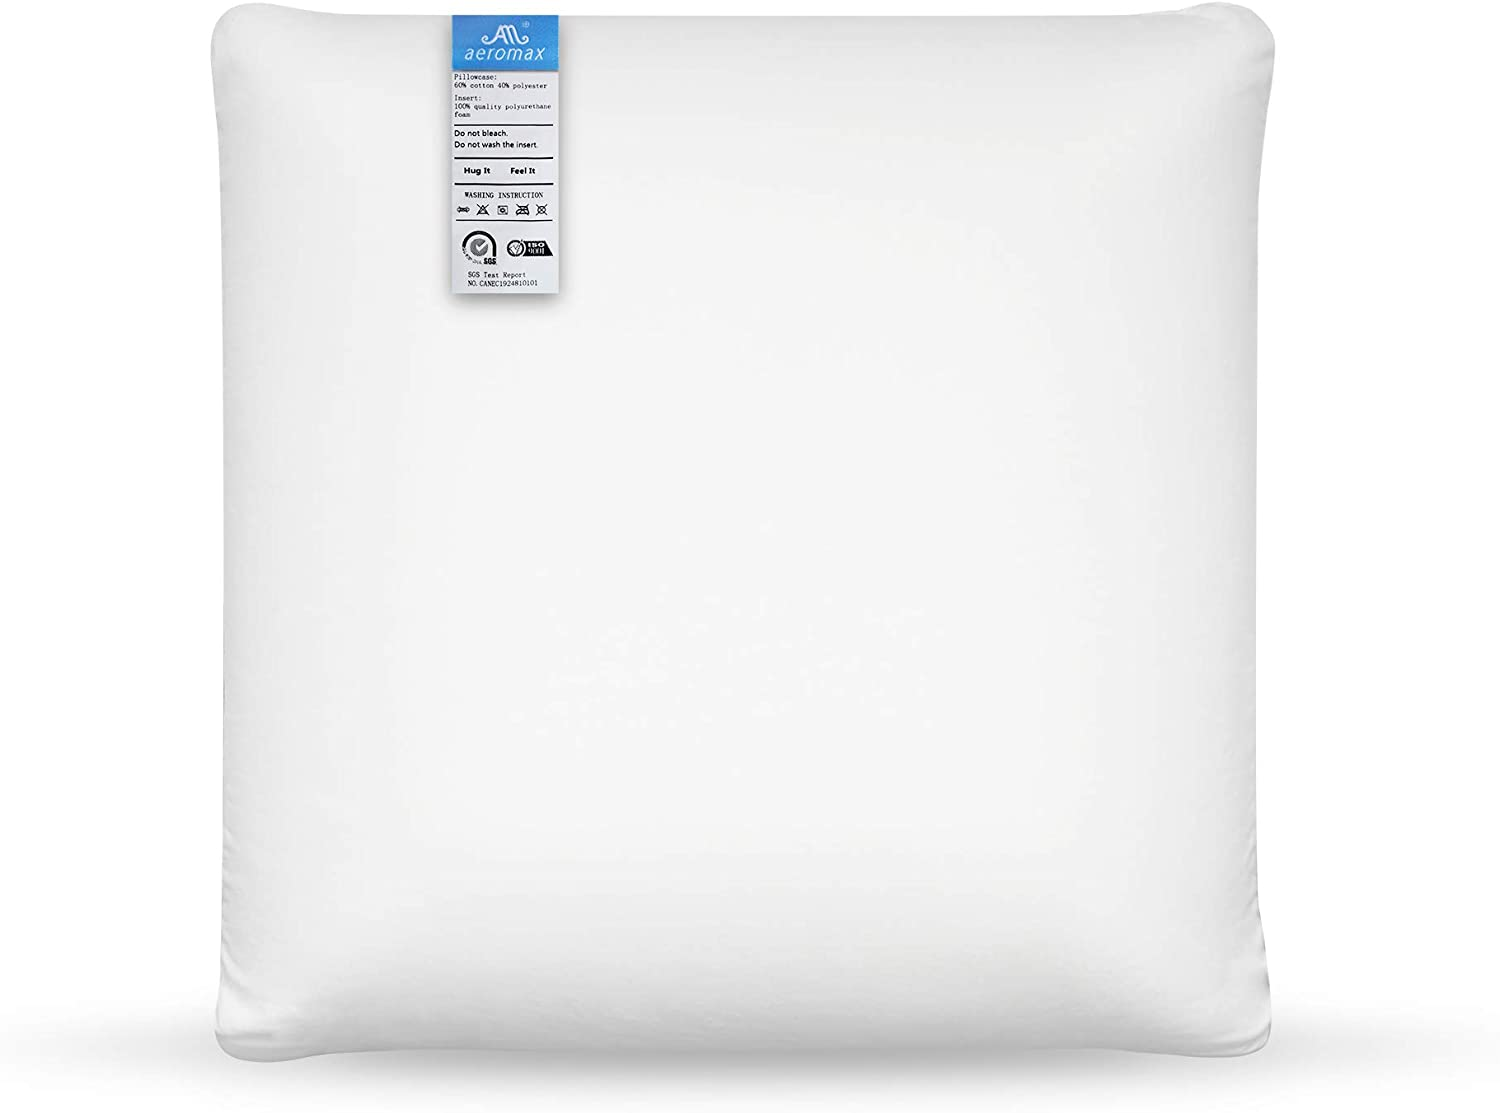 AM AEROMAX Memory Foam Throw Pillow Insert 18 x 18-Inch Insert with Cotton Cover Decorate Pillow Insert Without Deform After Longtime Use for Sofa Bedroom and Living Room